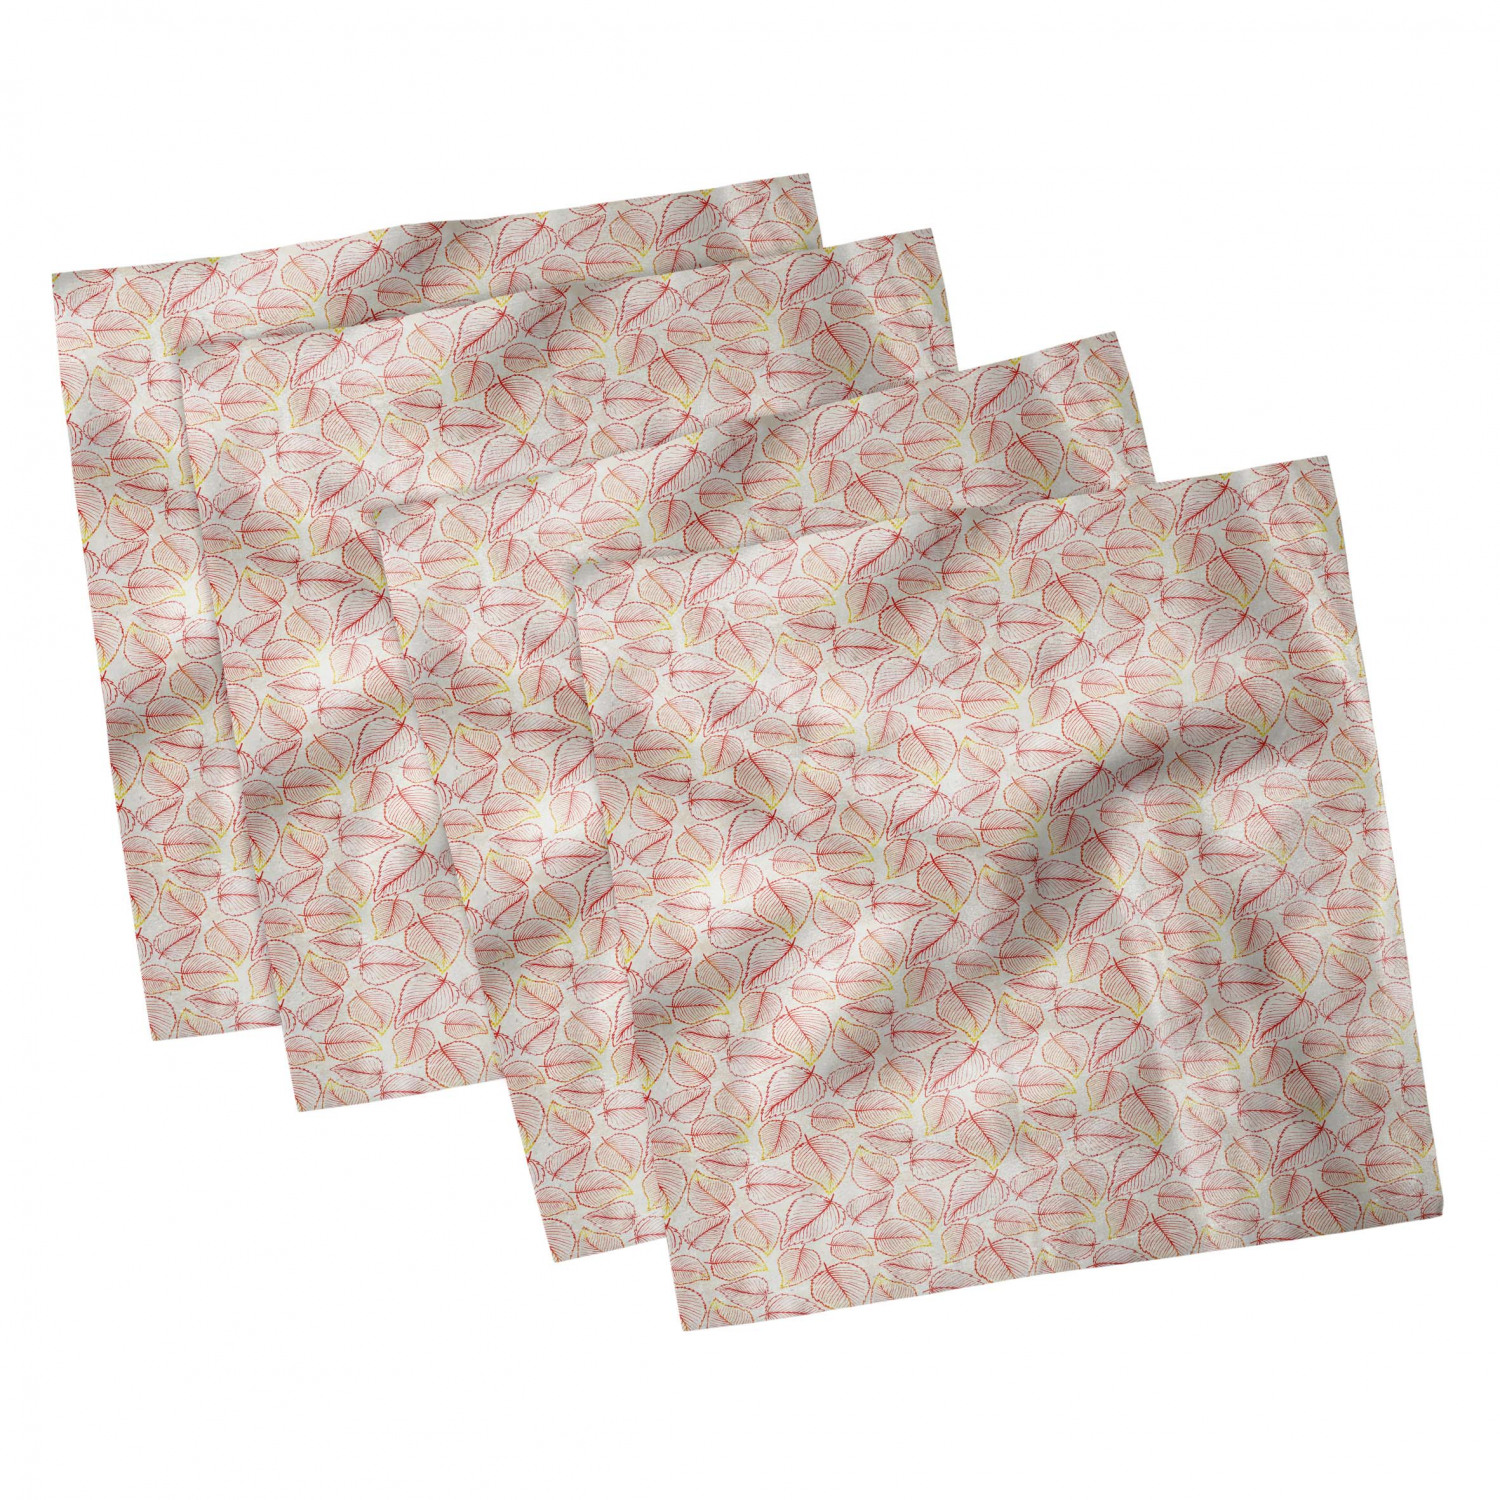 thumbnail 73 - Ambesonne Autumn Fall Decorative Satin Napkins Set of 4 Party Dinner Fabric